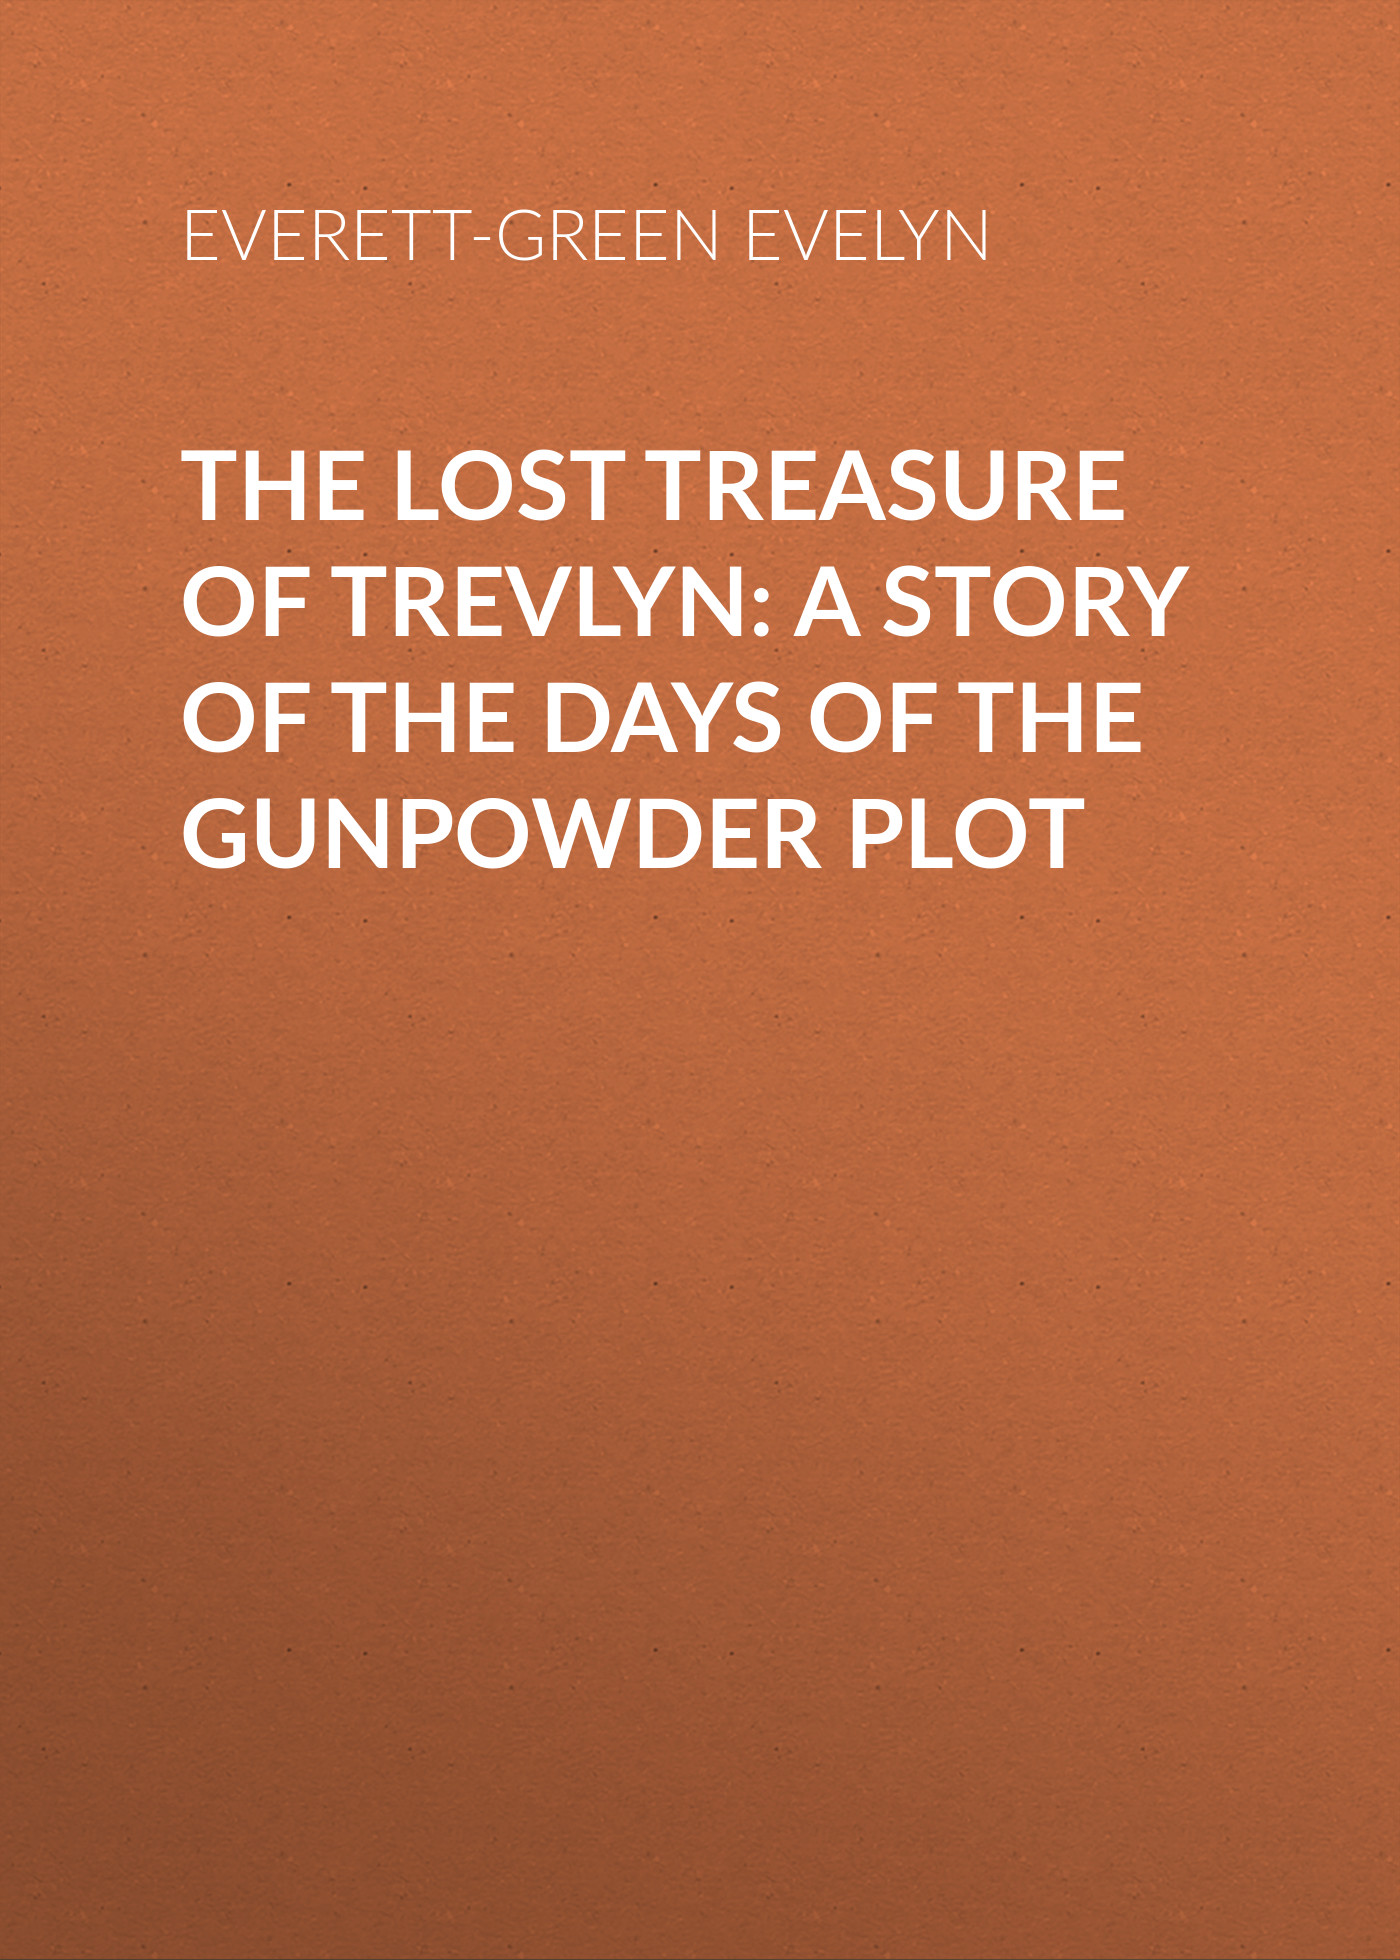 лучшая цена Everett-Green Evelyn The Lost Treasure of Trevlyn: A Story of the Days of the Gunpowder Plot